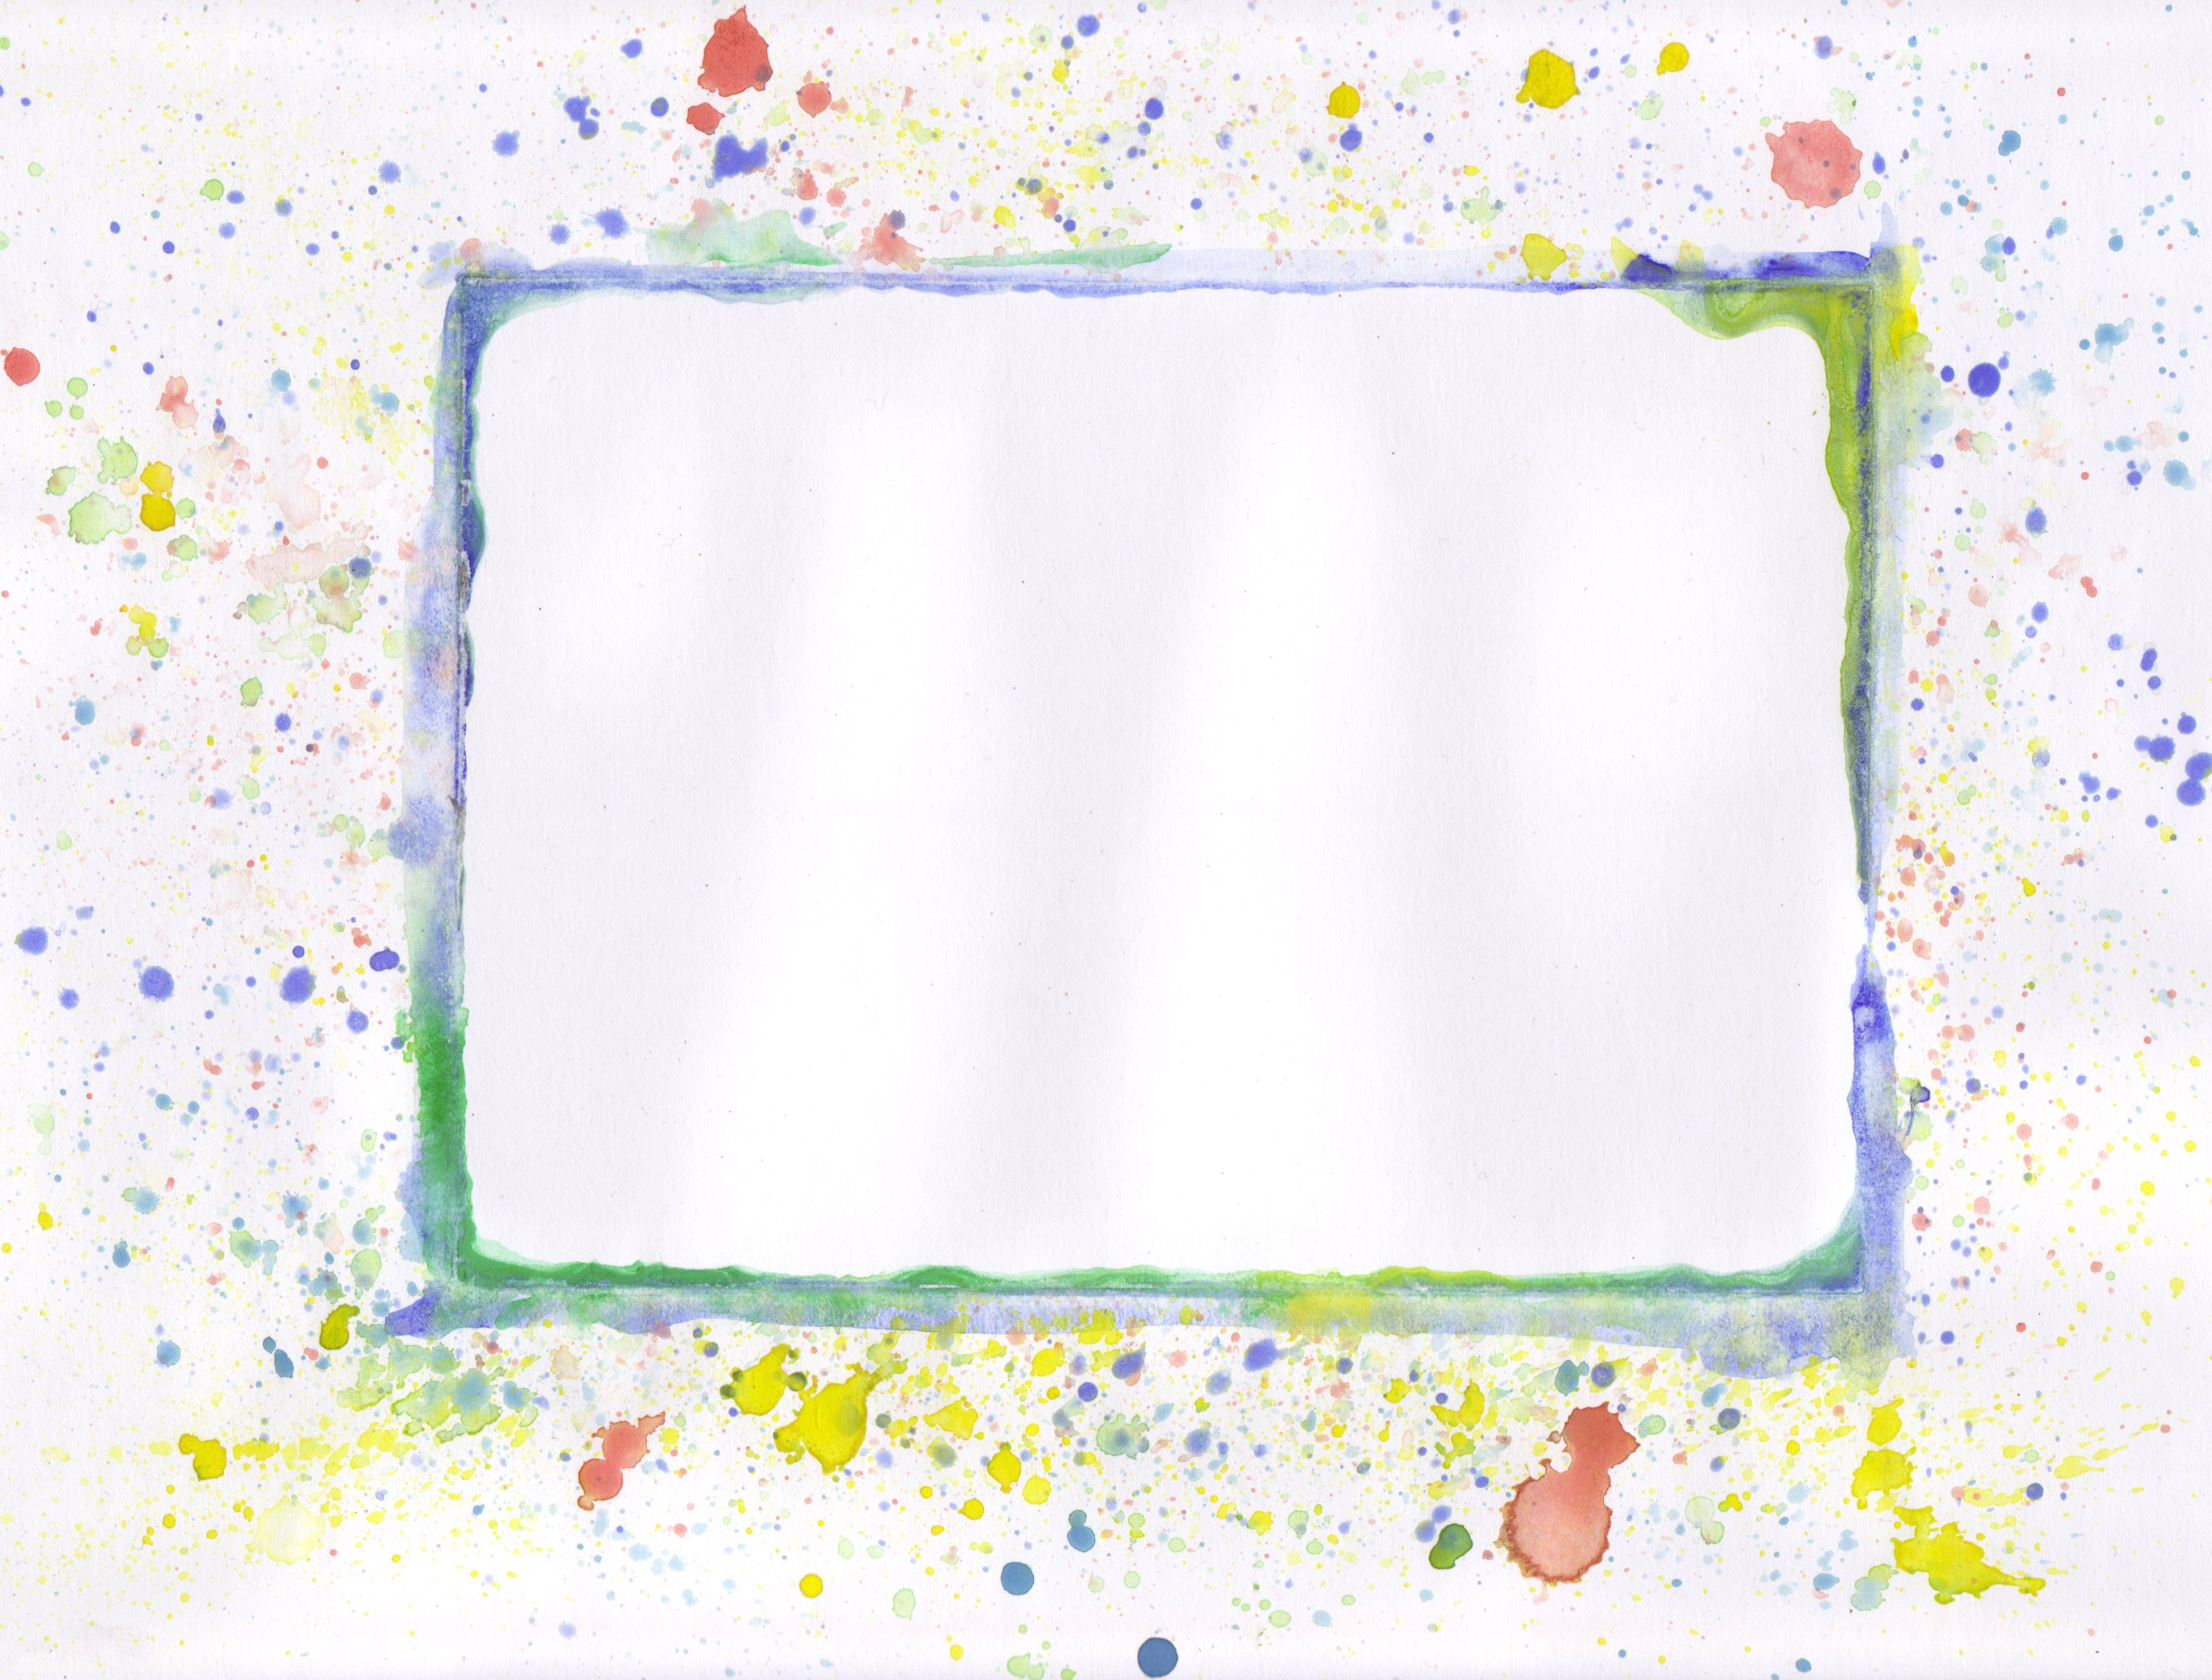 Painted frame - 02